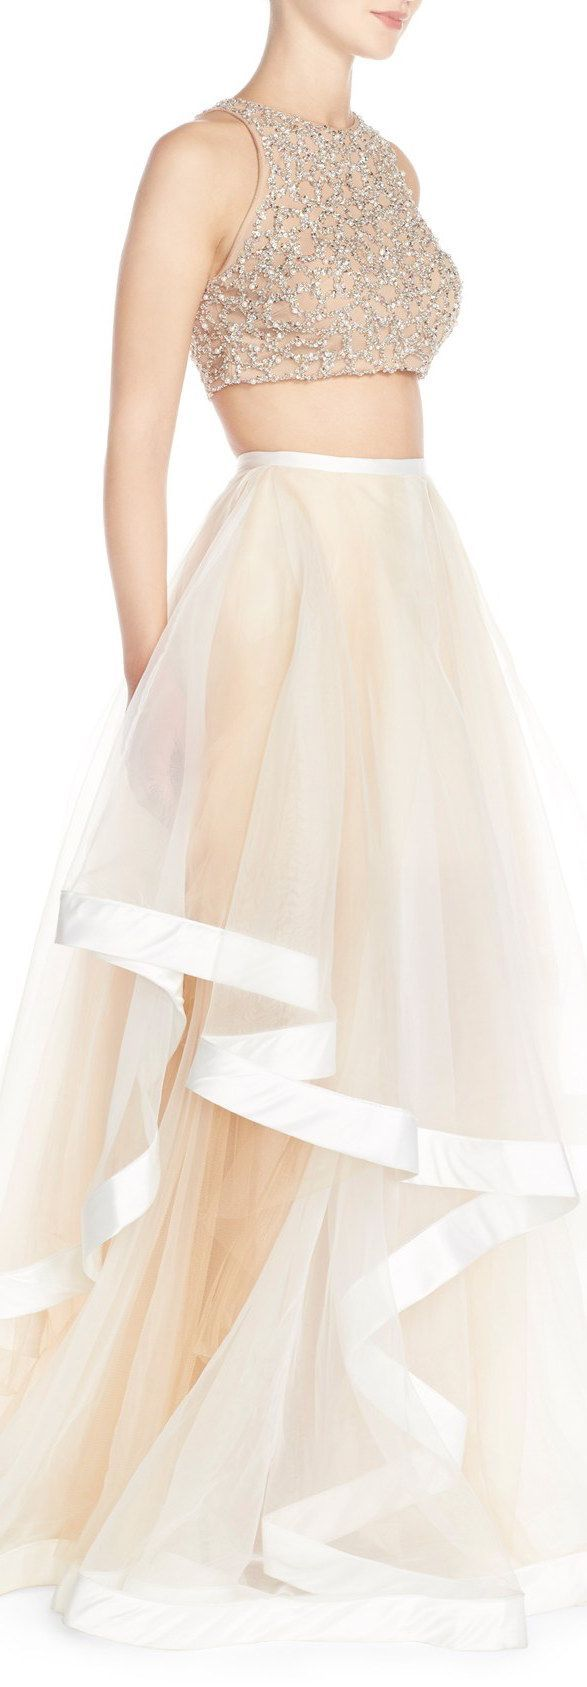 28e9d327957 Glamour by Terani Couture Beaded Top   Organza Two-Piece Ballgown ...